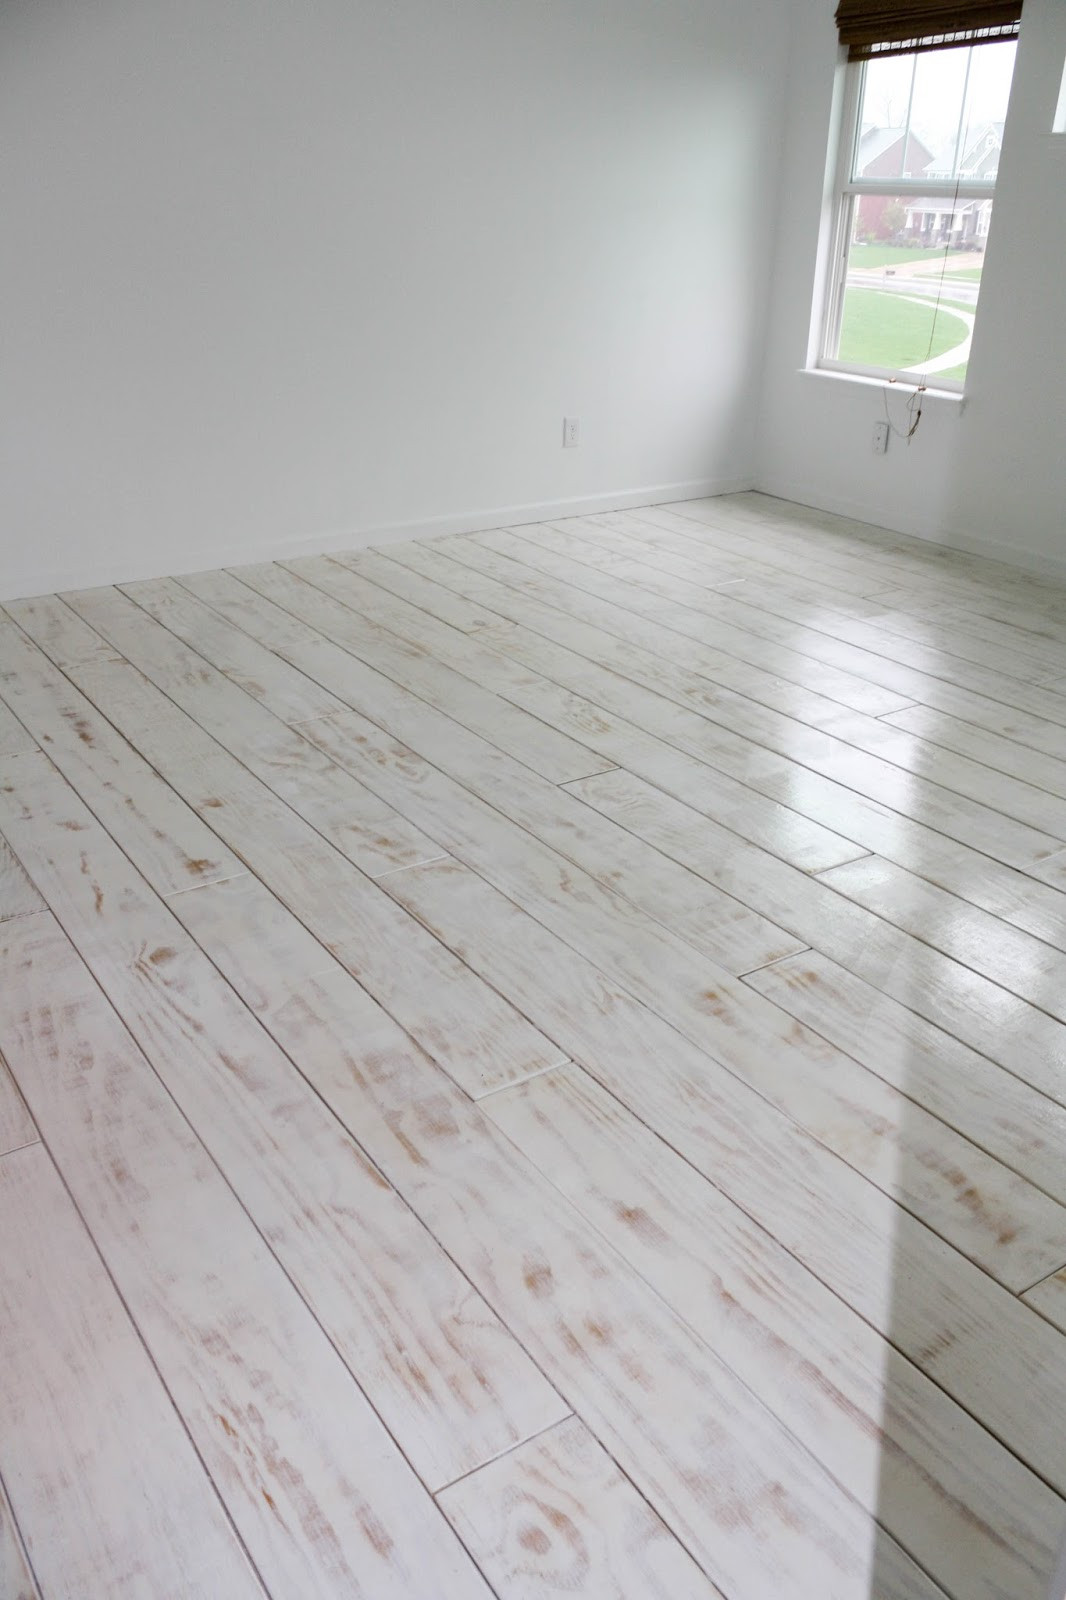 Best ideas about DIY Wood Floors . Save or Pin DIY PLANKED FLOORS Now.